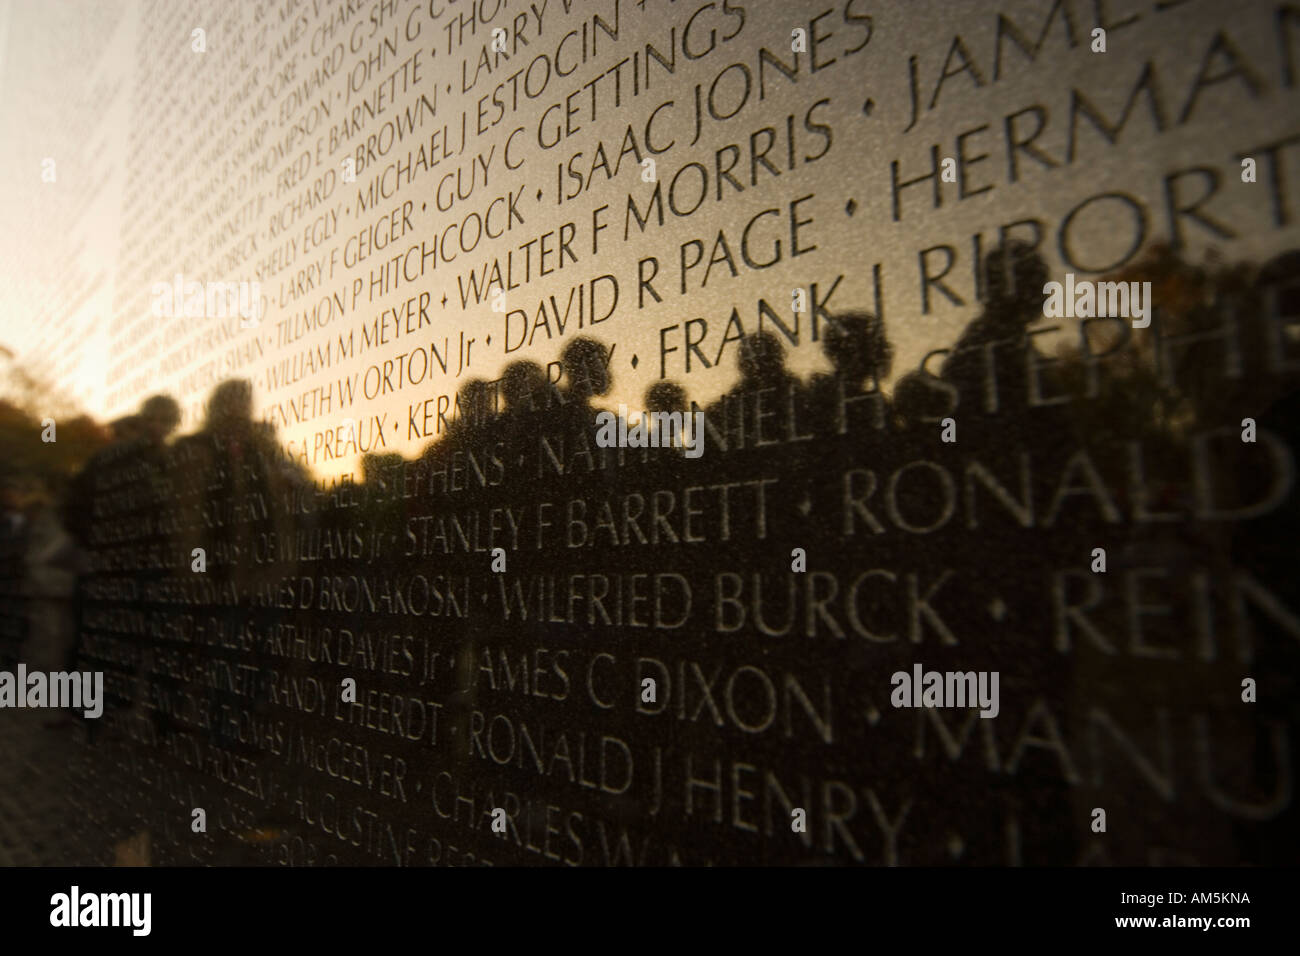 https://c7.alamy.com/comp/AM5KNA/washington-vietnam-memorial-washington-vietnam-veterans-war-memorial-AM5KNA.jpg